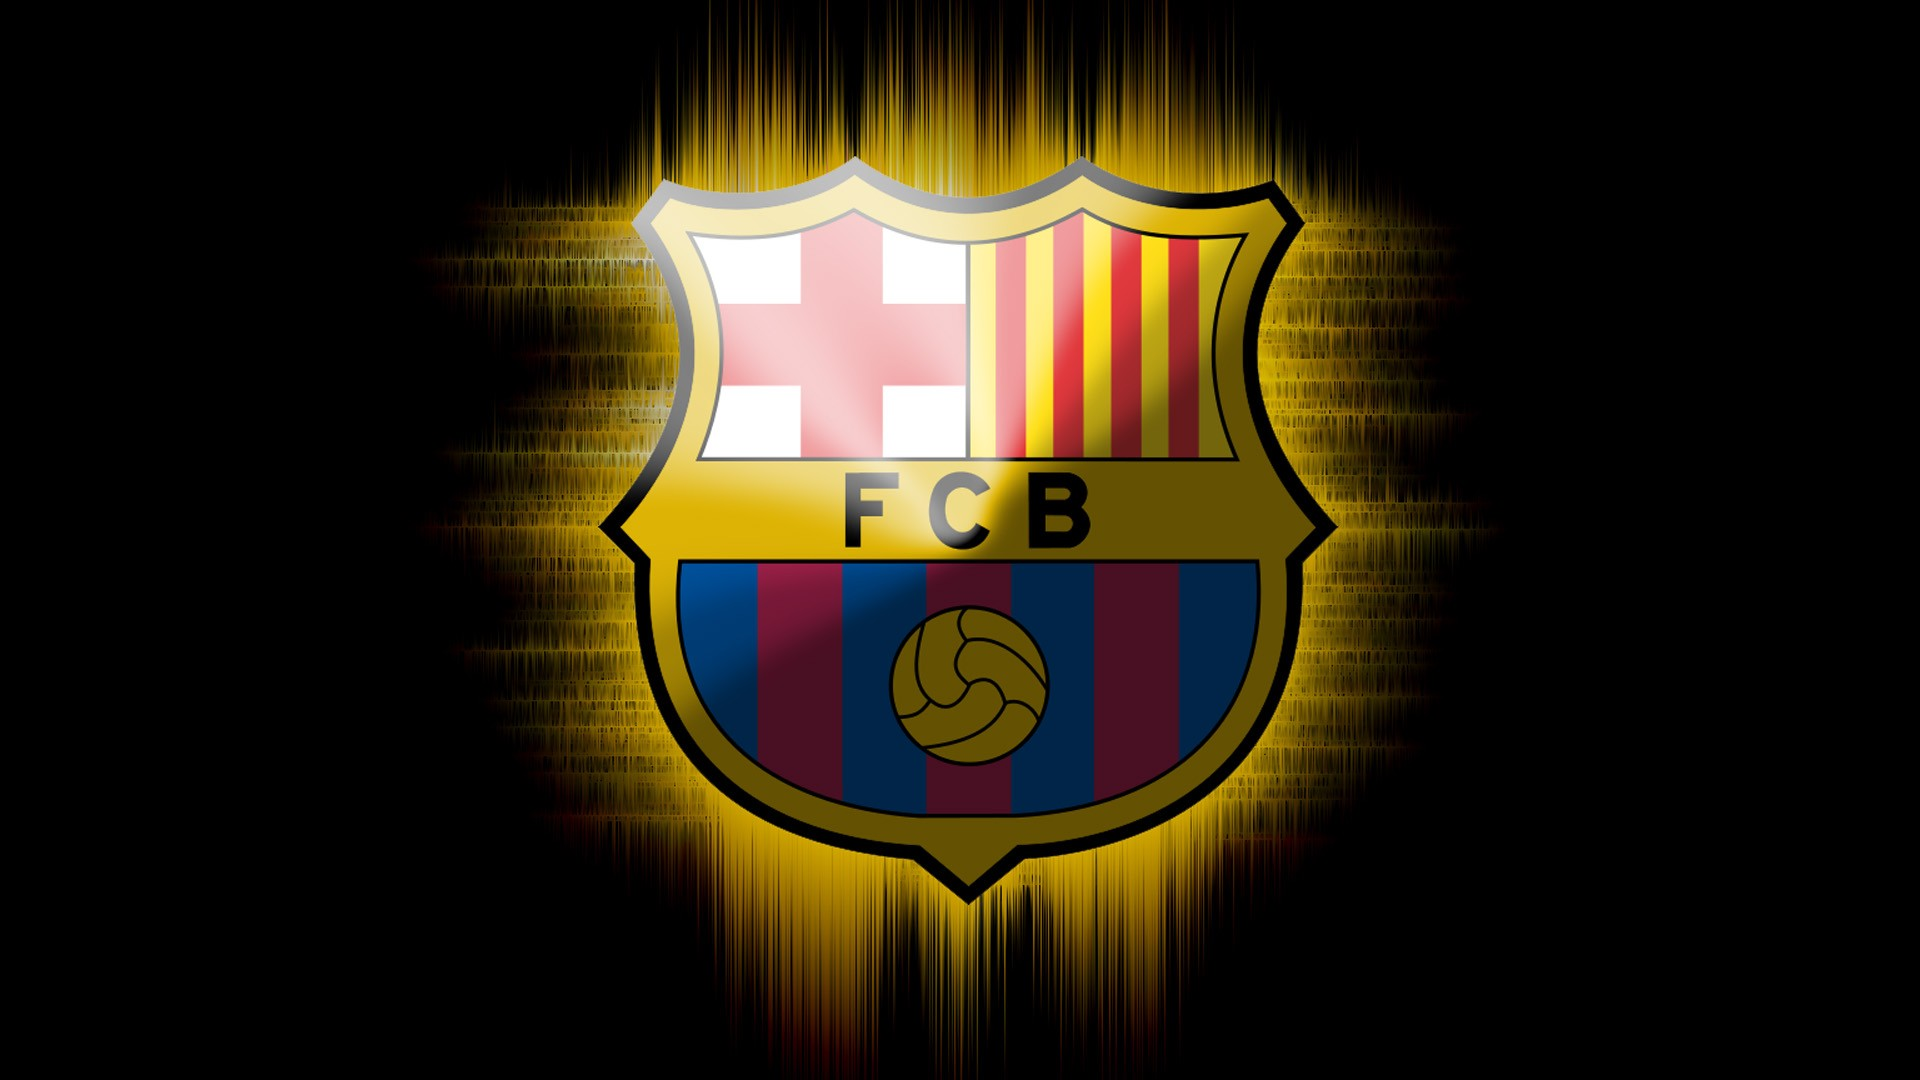 Fc Barcelona Wallpaper Download Free Wallpapers For Desktop And